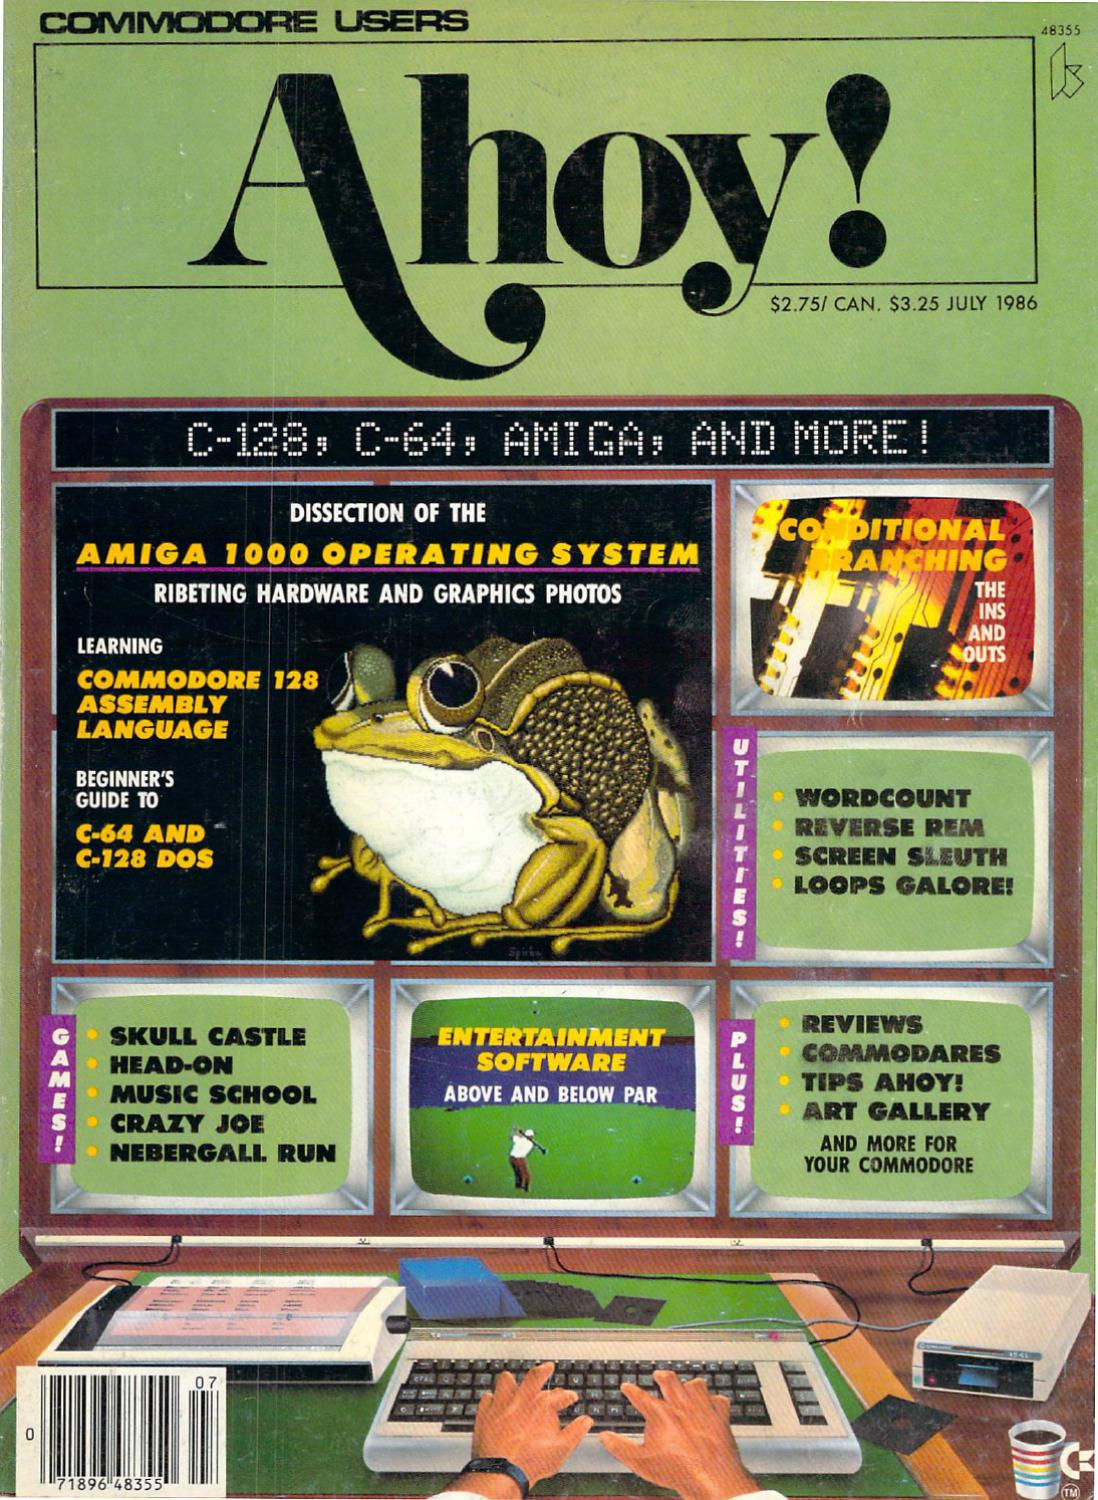 Ahoy_Issue_31_1986_Jul by Zetmoon - issuu